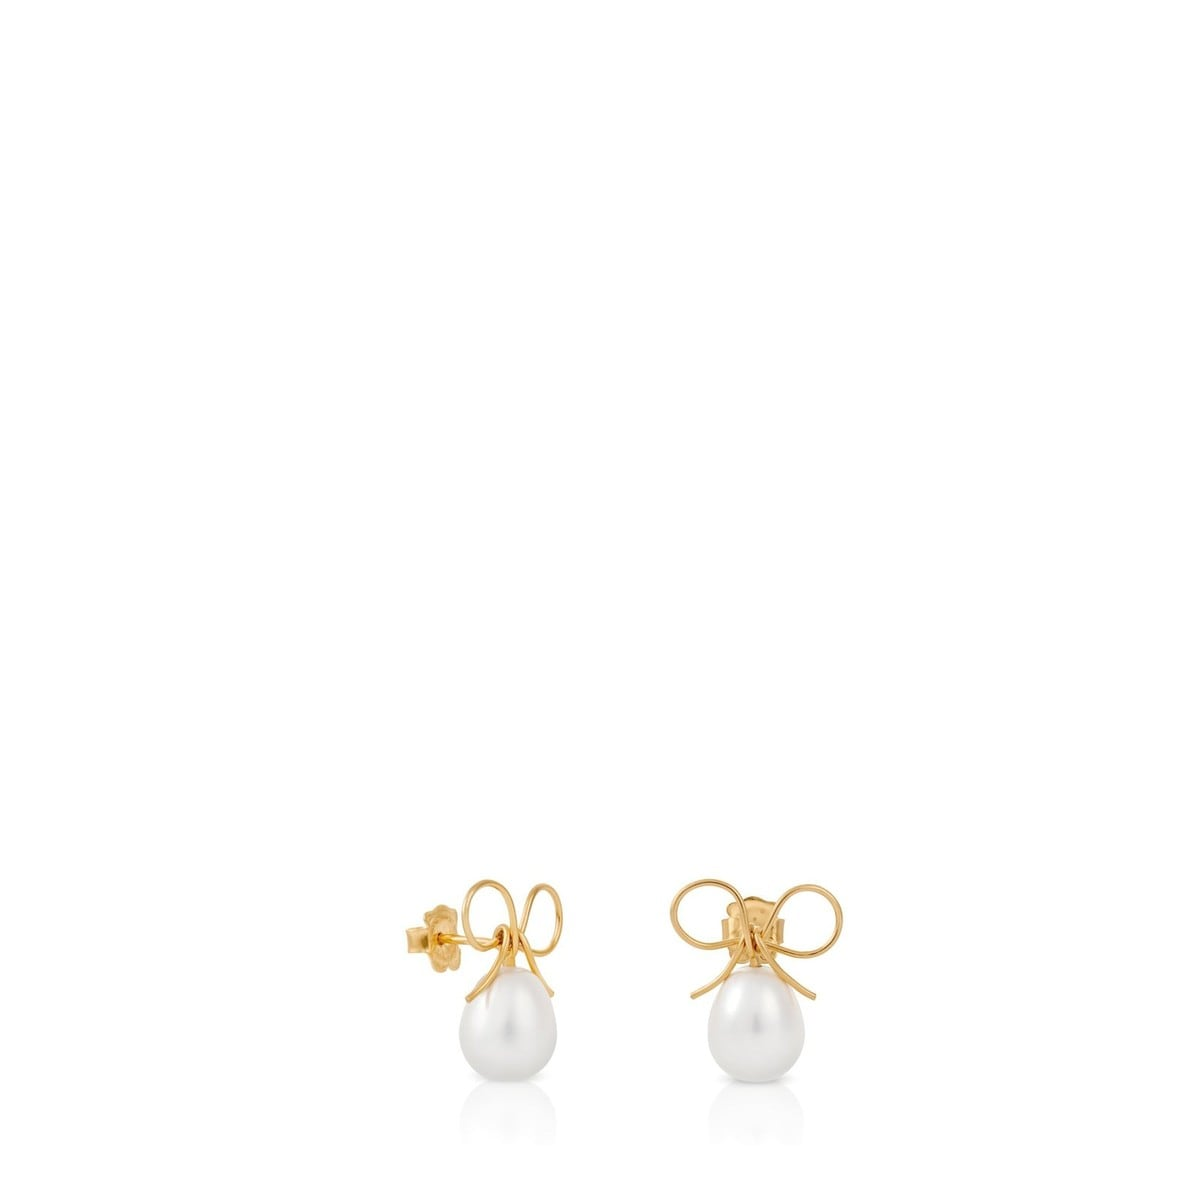 Gold Lazo Earrings with Pearl